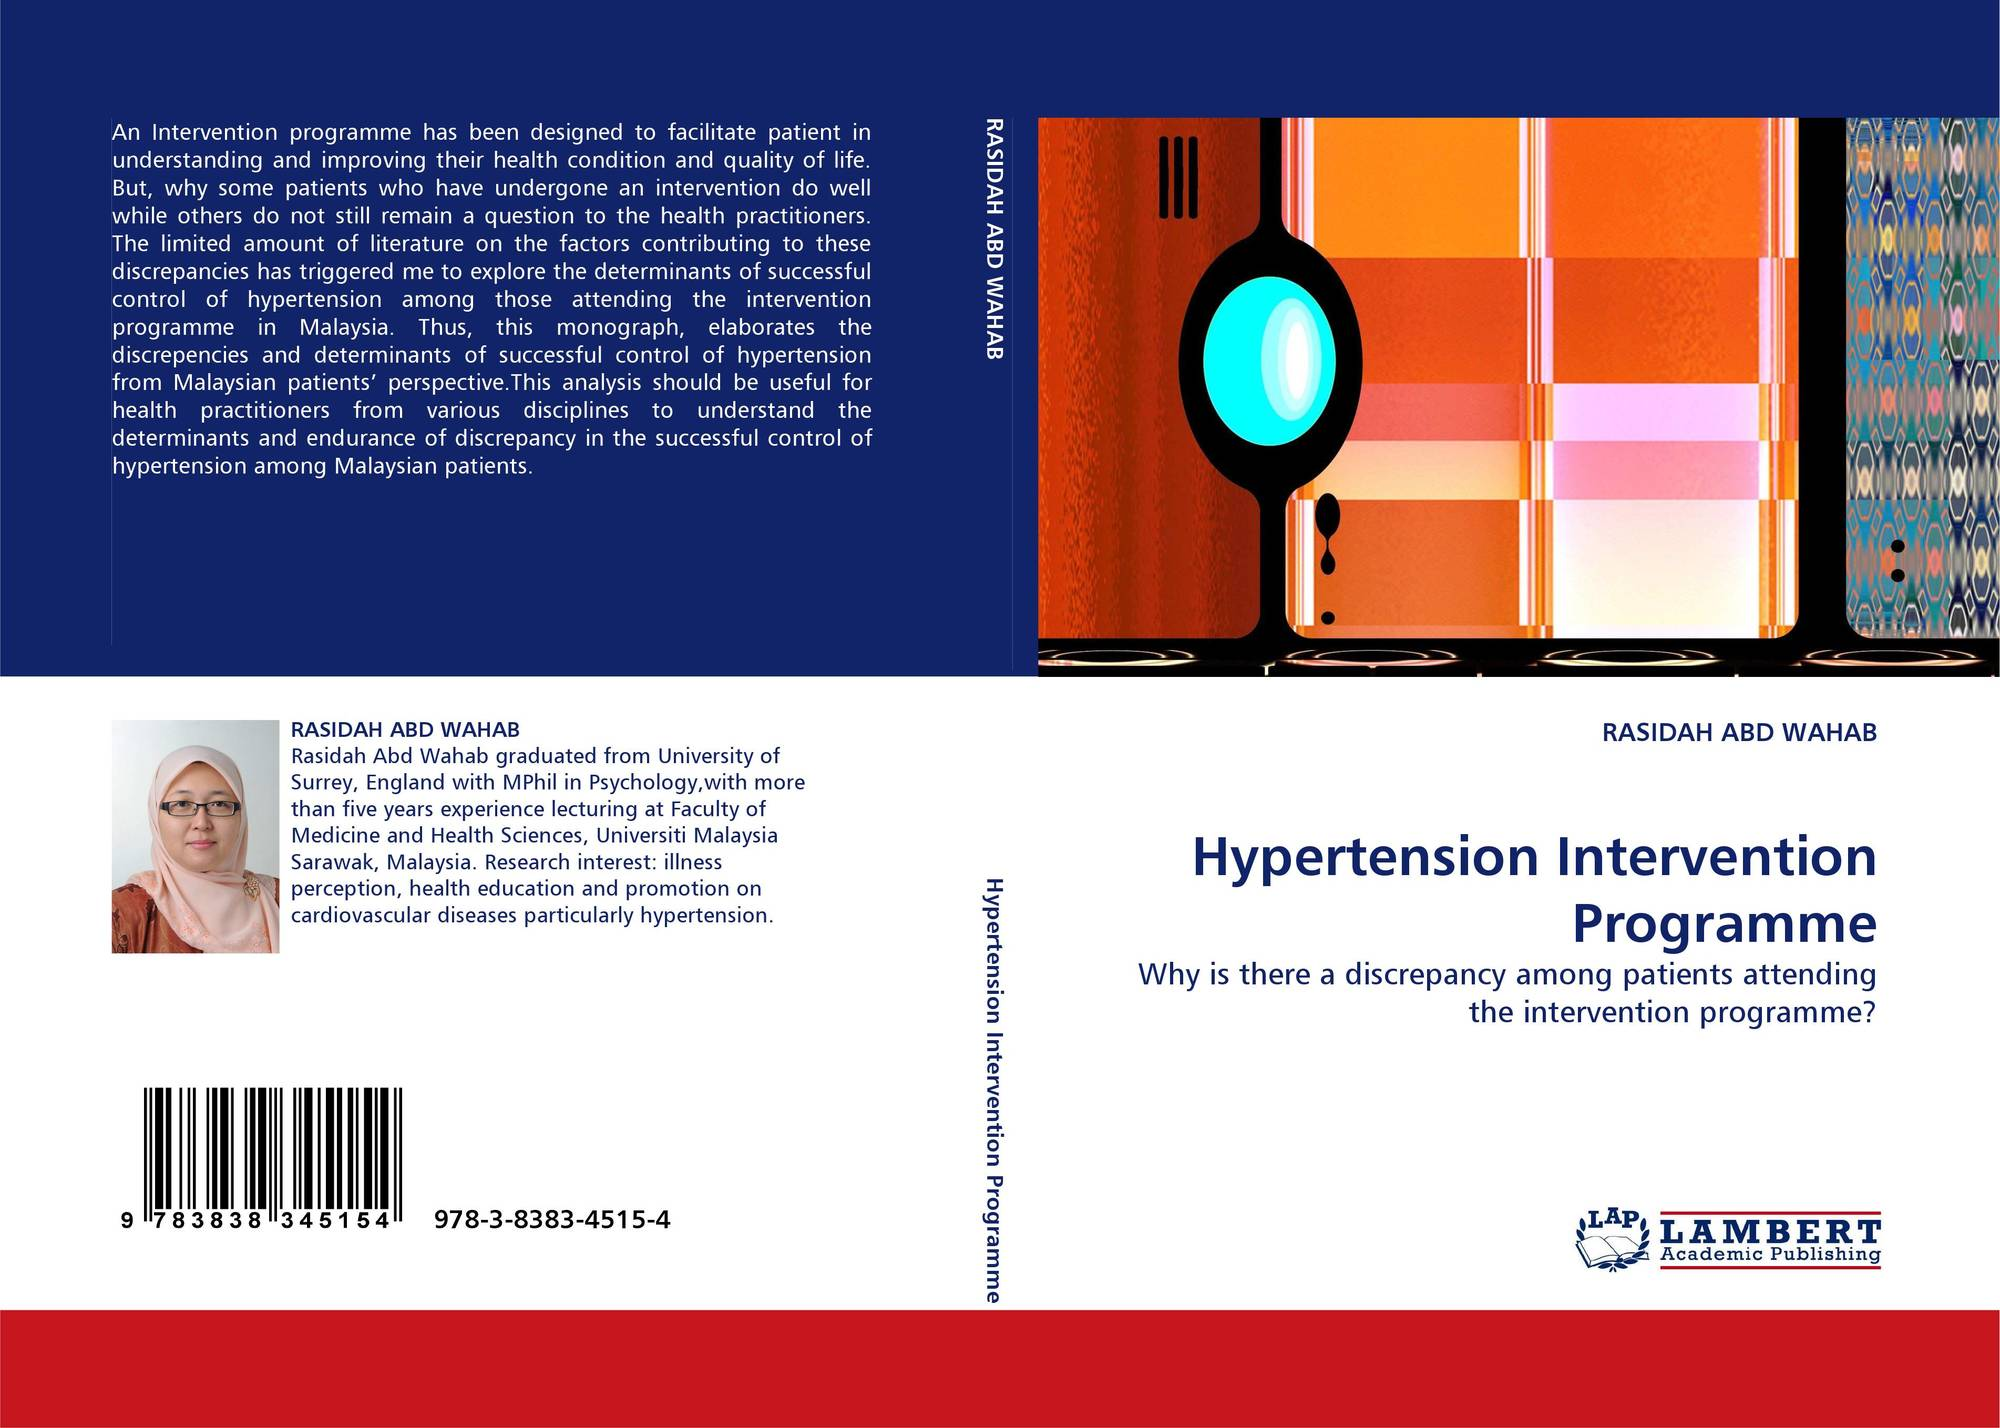 hypertension intervention Hypertension or high blood pressure can lead to heart disease, stroke, and death and is a major global health concern a range of risk factors may increase the chances of a person developing hypertension, but can it be prevented.